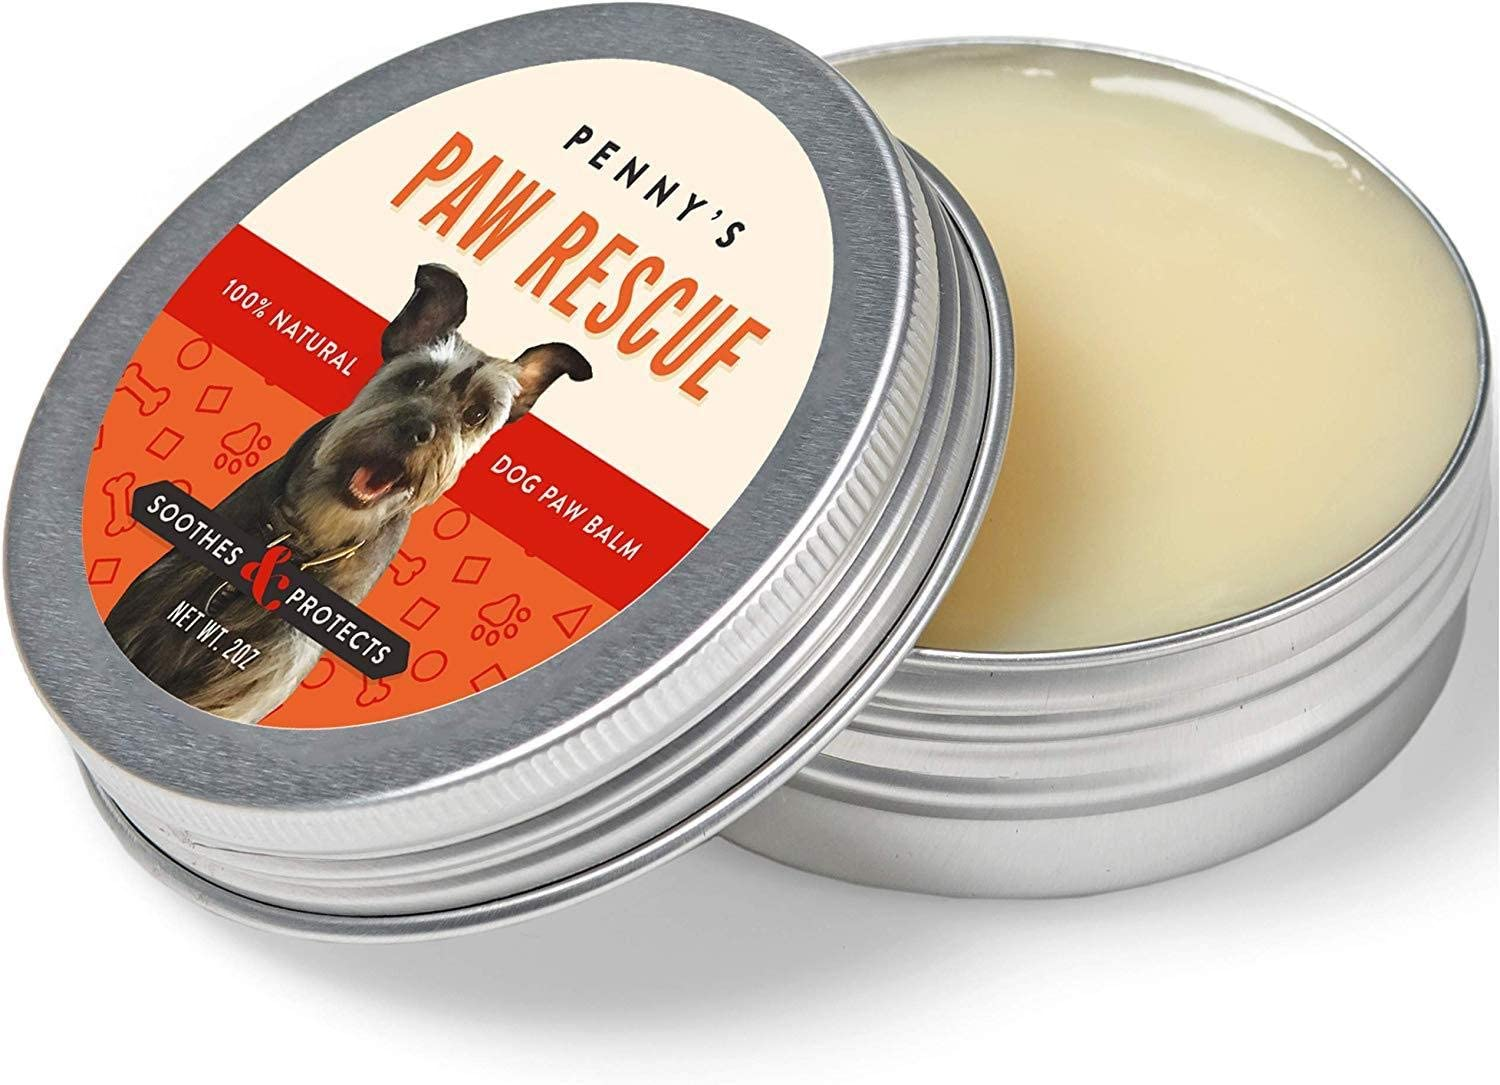 UpNature Penny's Paw Rescue 100% Natural Dog Paw Balm